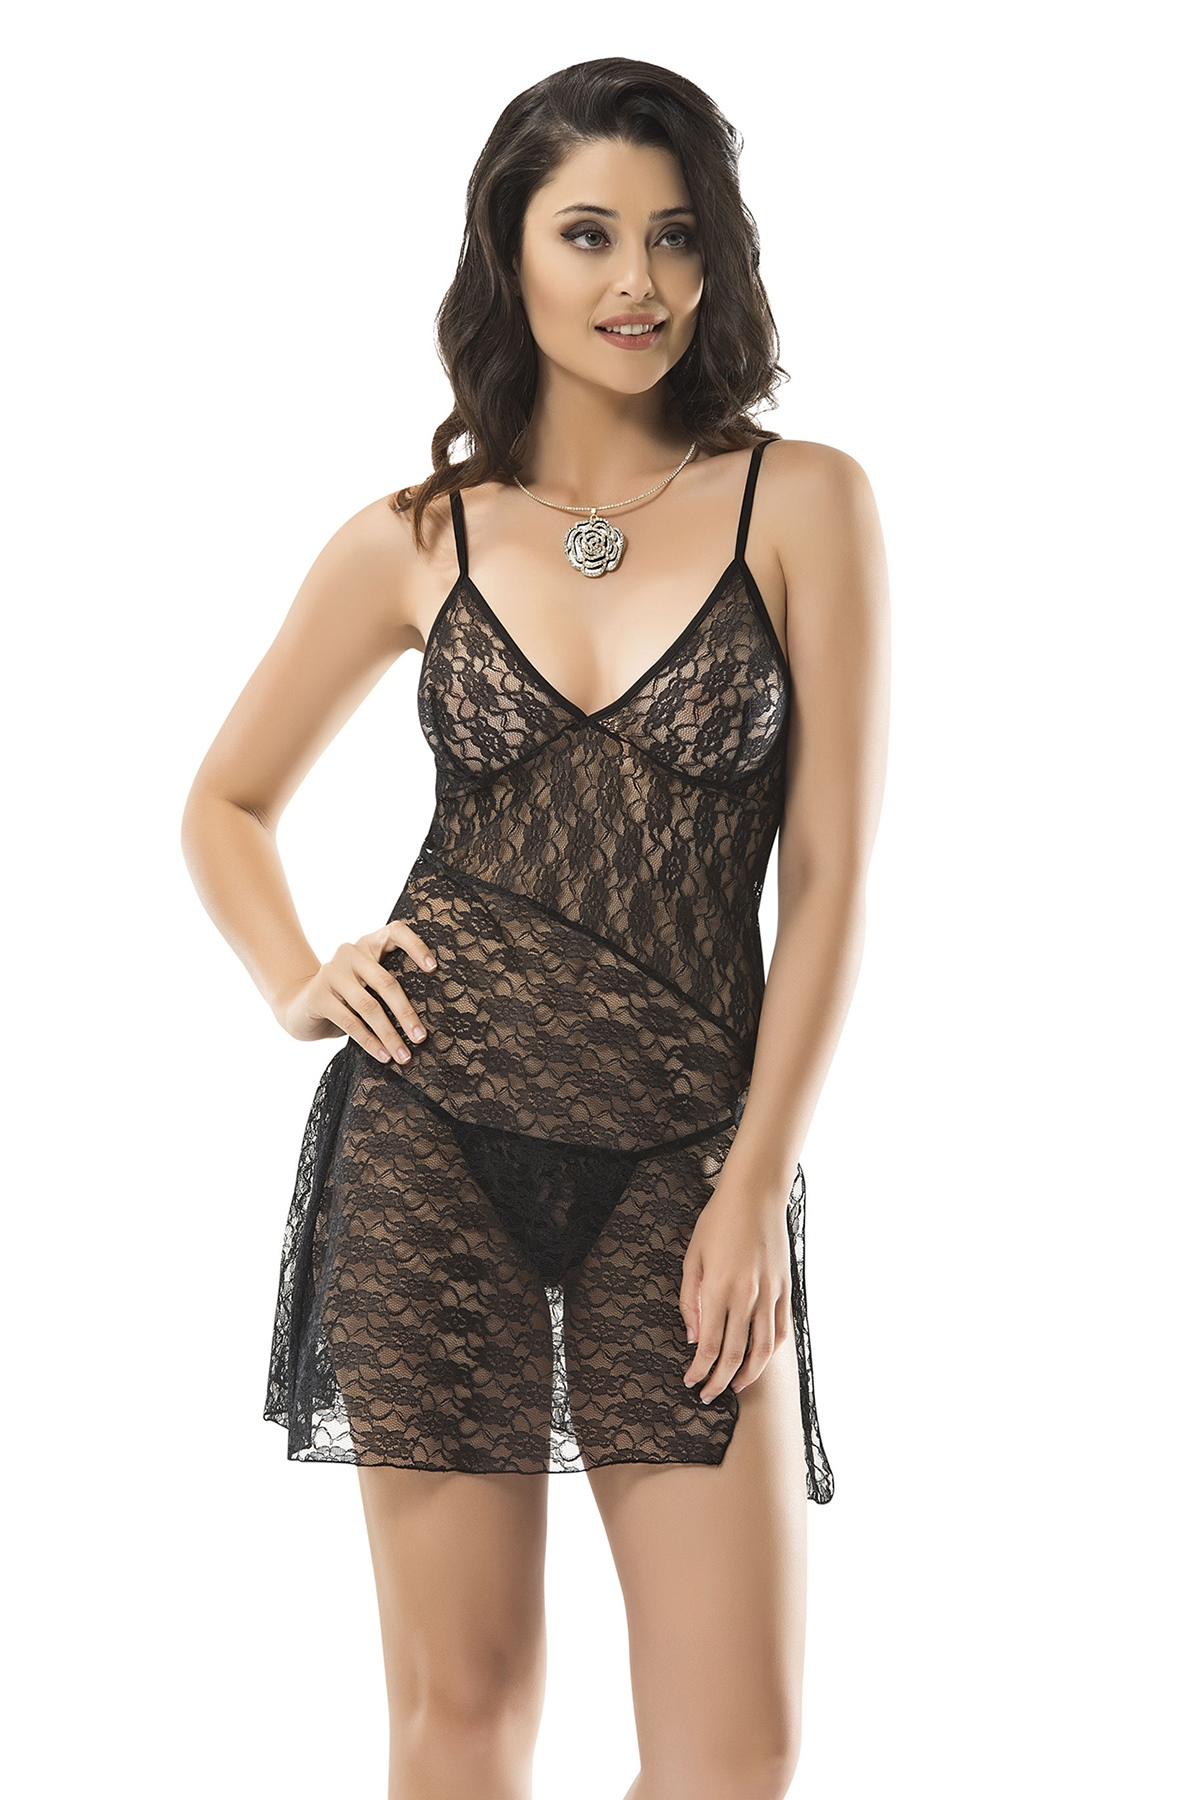 Strappy Lace Detailed Black Fantasy Set